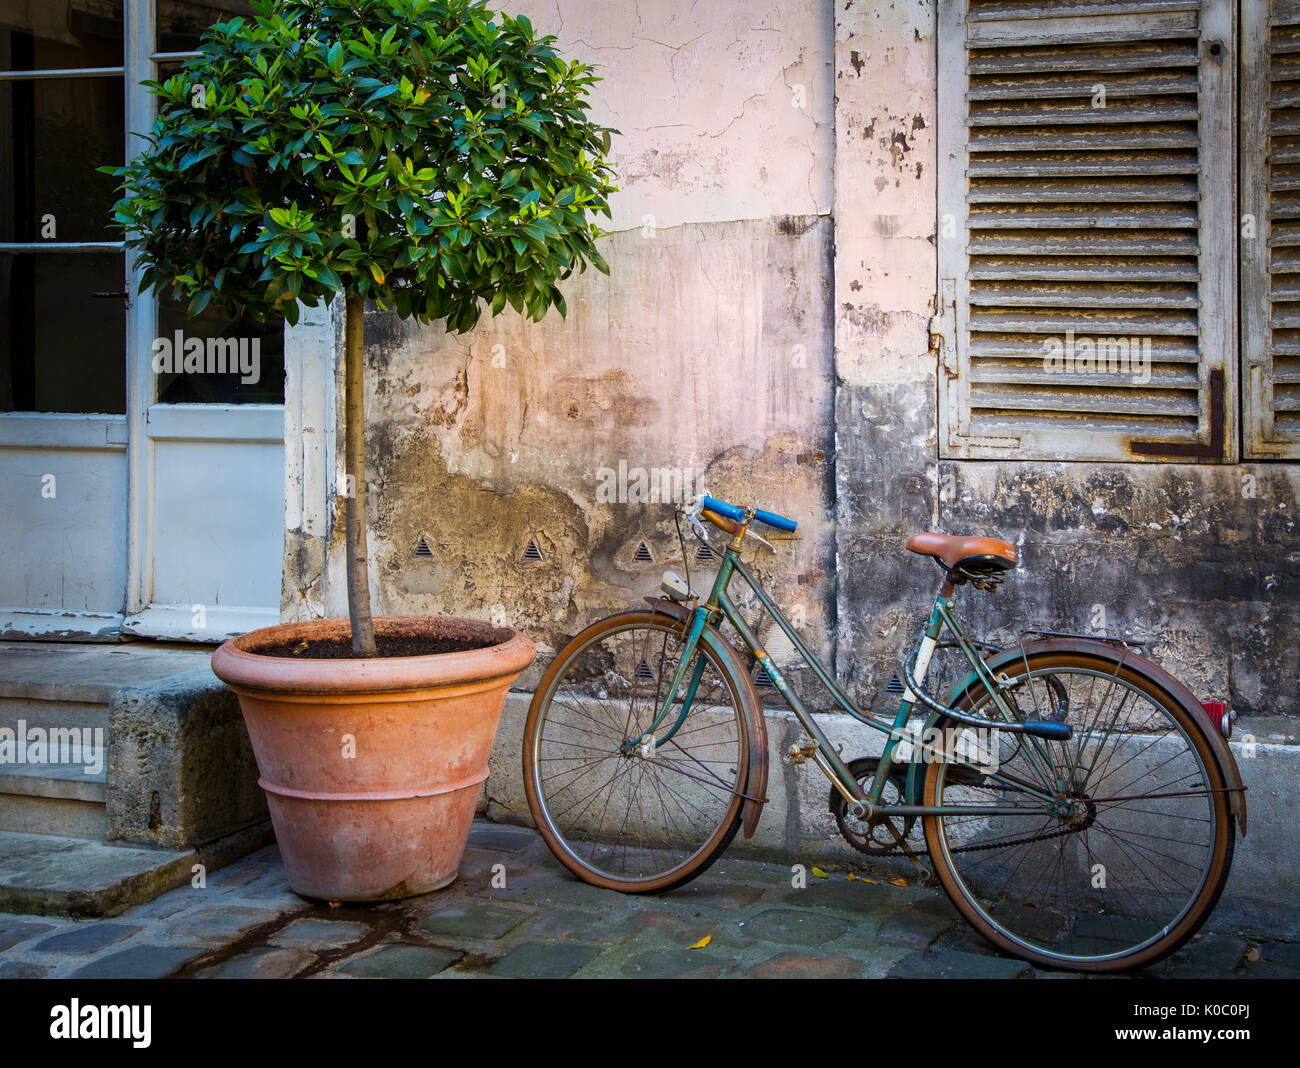 Bicycle parked along ancient wall, Paris, France - Stock Image